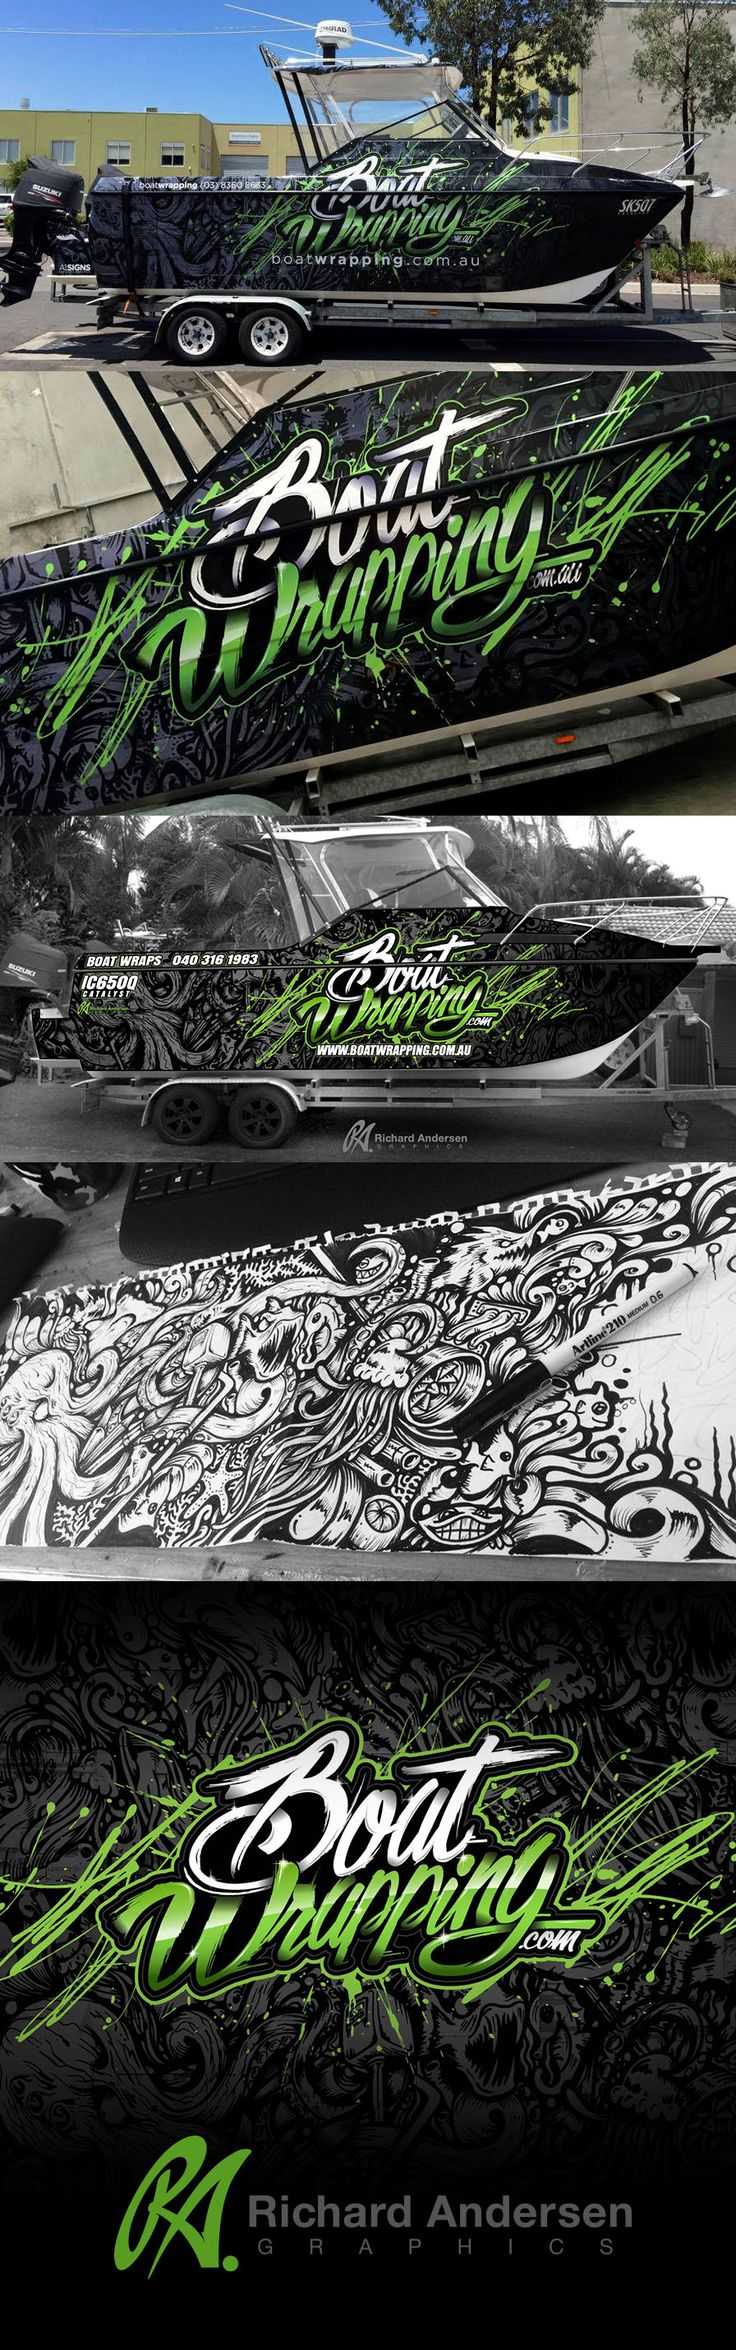 Best Boat Wraps Ideas On Pinterest Ski Boats Wakeboard - Sporting boat decalsbest boat wraps custom vinyl images on pinterest boat wraps